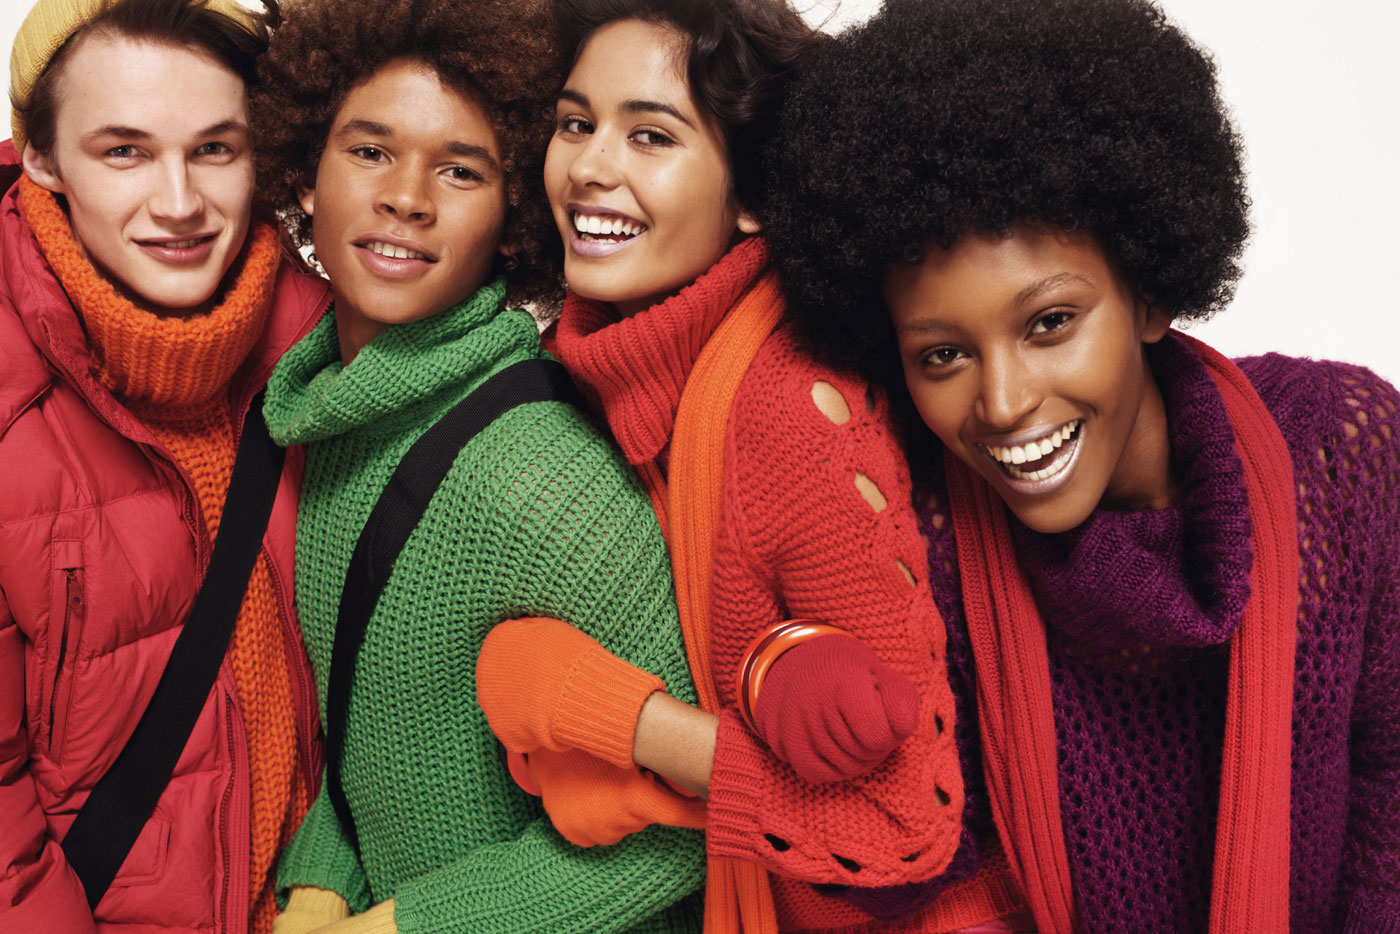 benetton - United Color Of Benetton